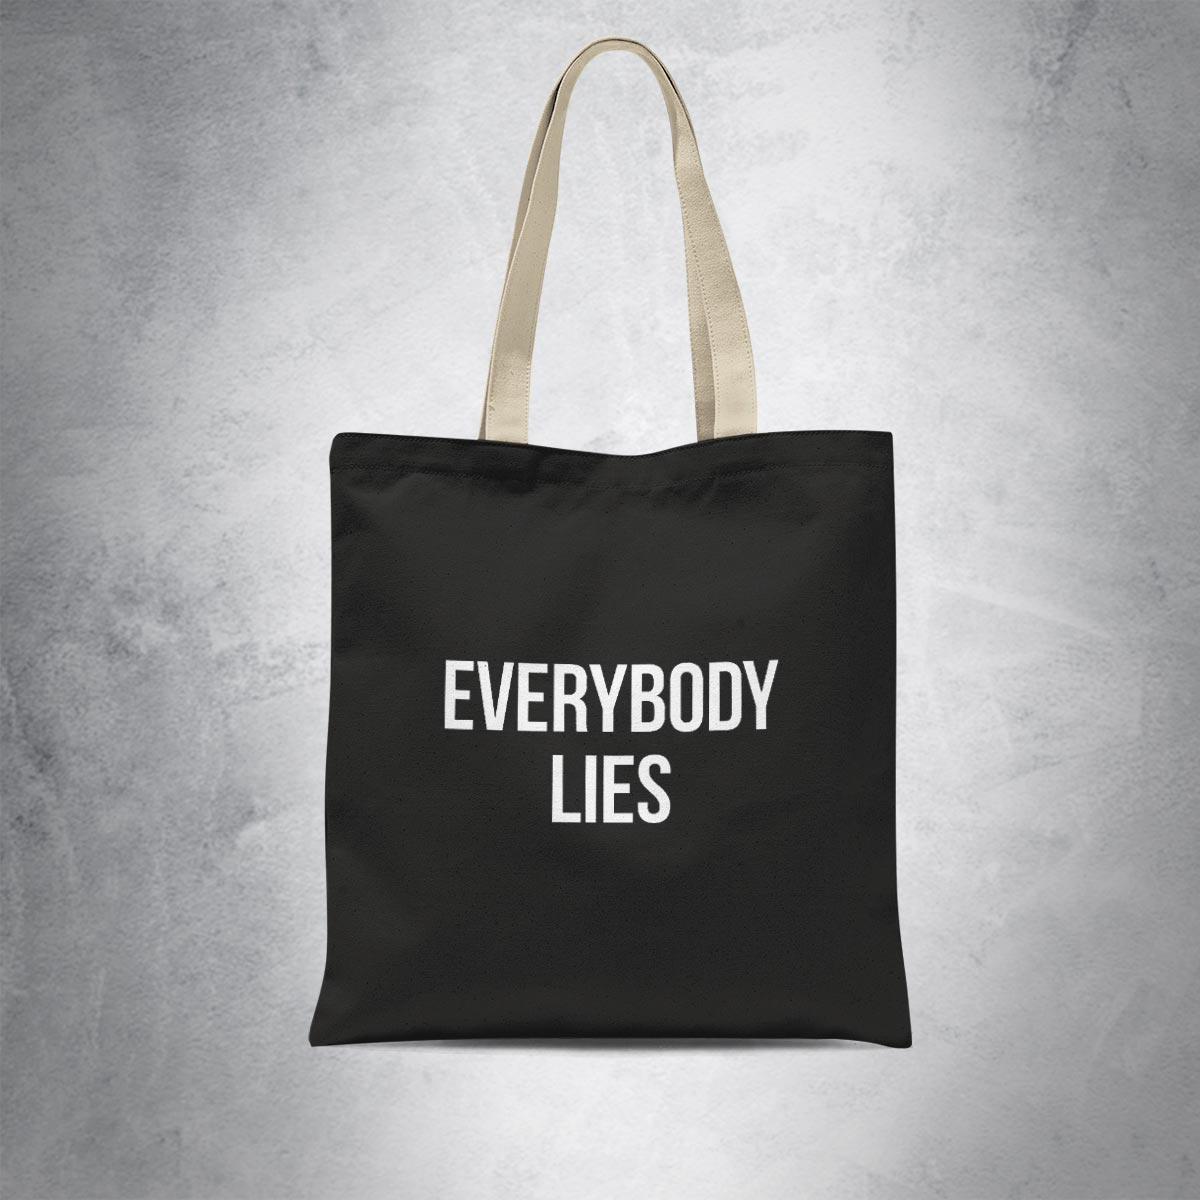 HOUSE - Everybody lies